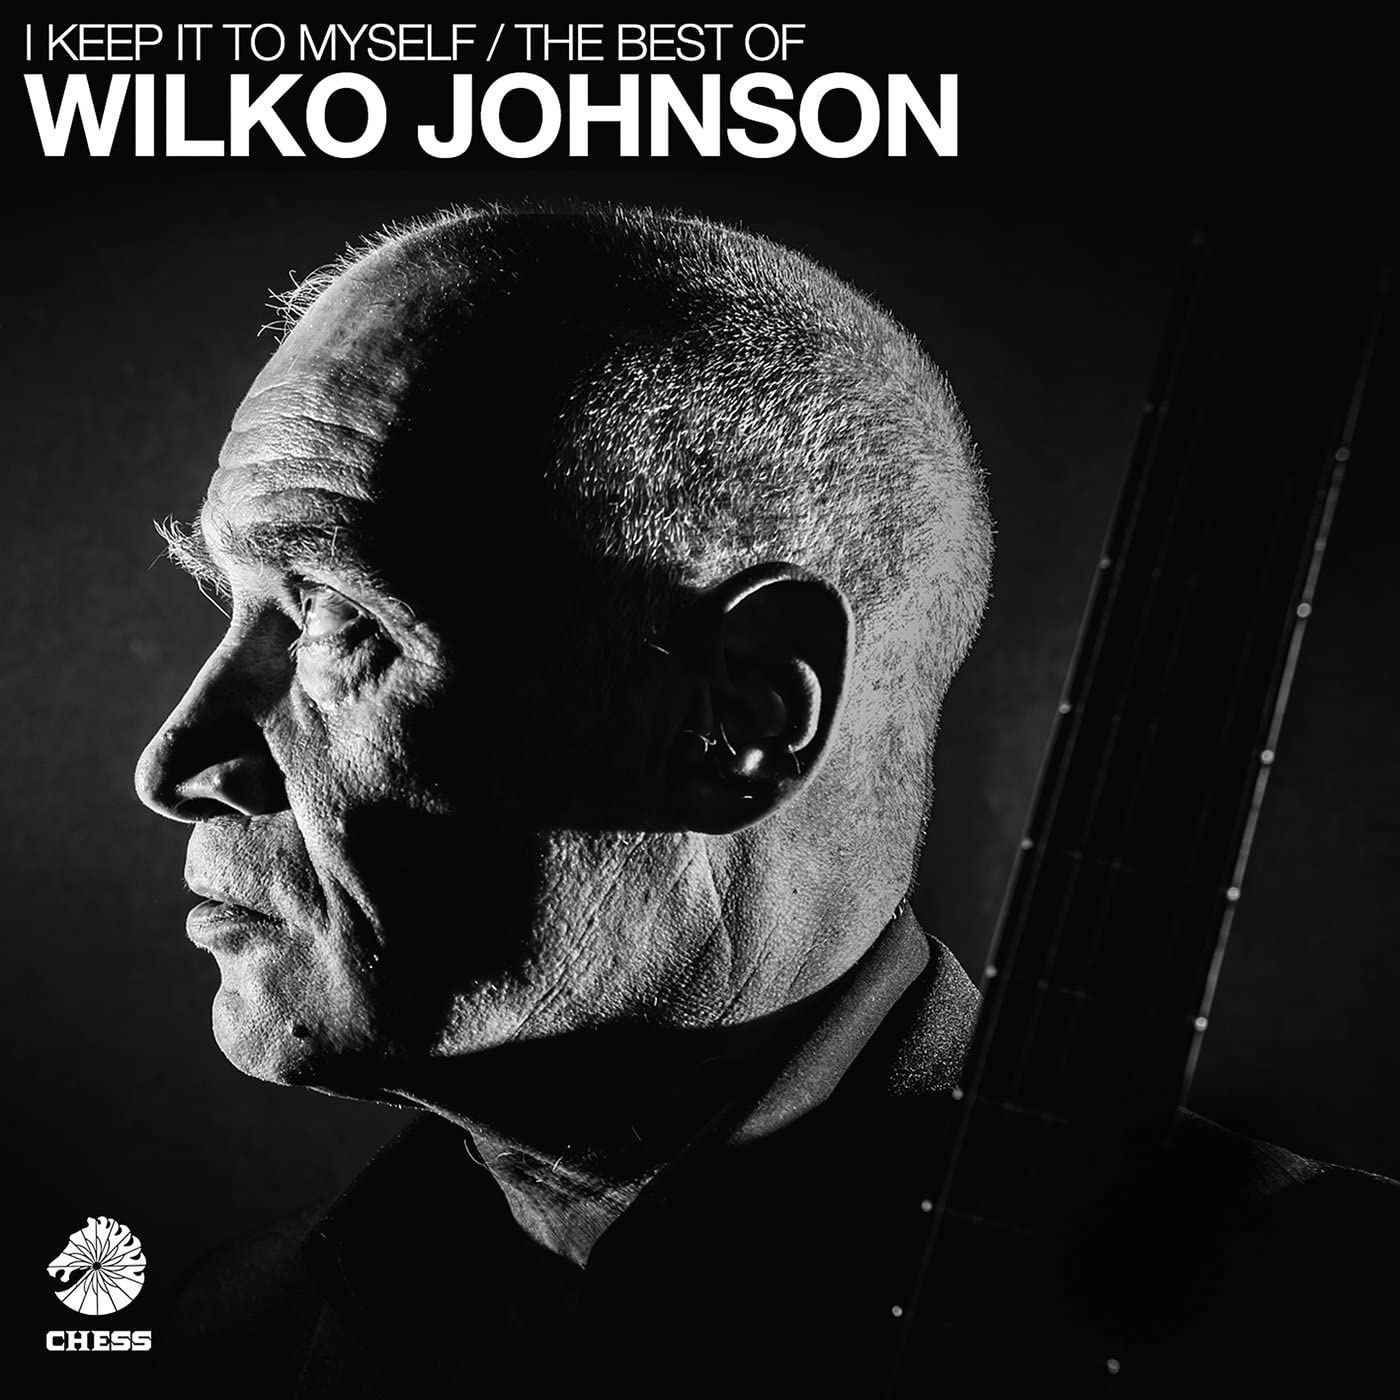 Johnson, Wilko/I Keep It To Myself - The Best Of (2LP) [LP]